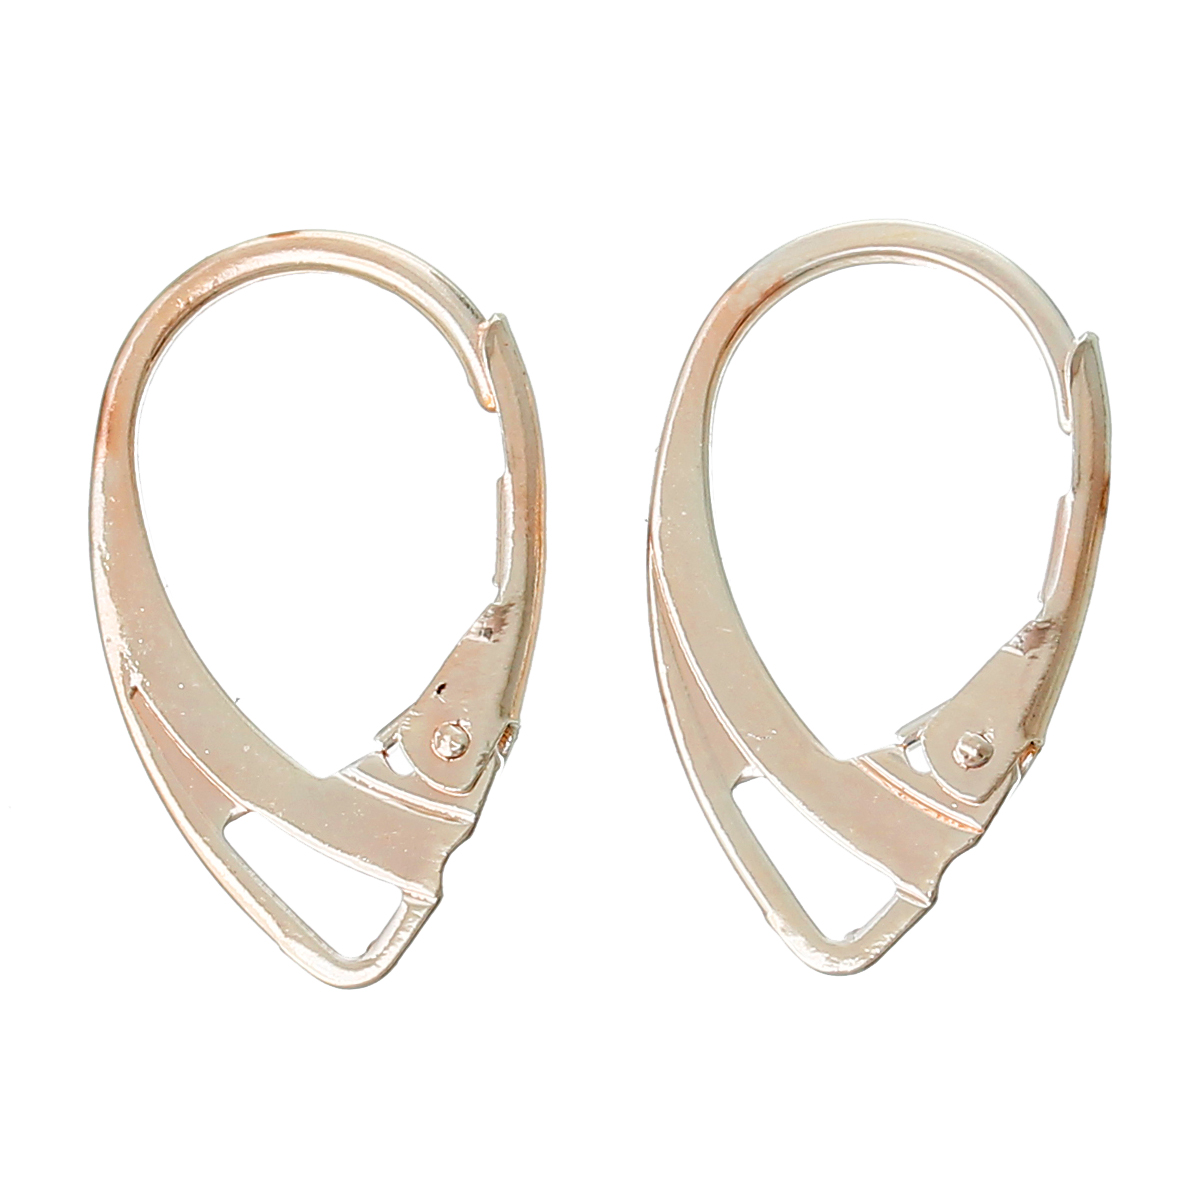 DoreenBeads Zinc metal alloy Earring Components Clips Earring Findings Rose golden 18mm( 6/8) x 11mm( 3/8), 2 Pieces 2017 new